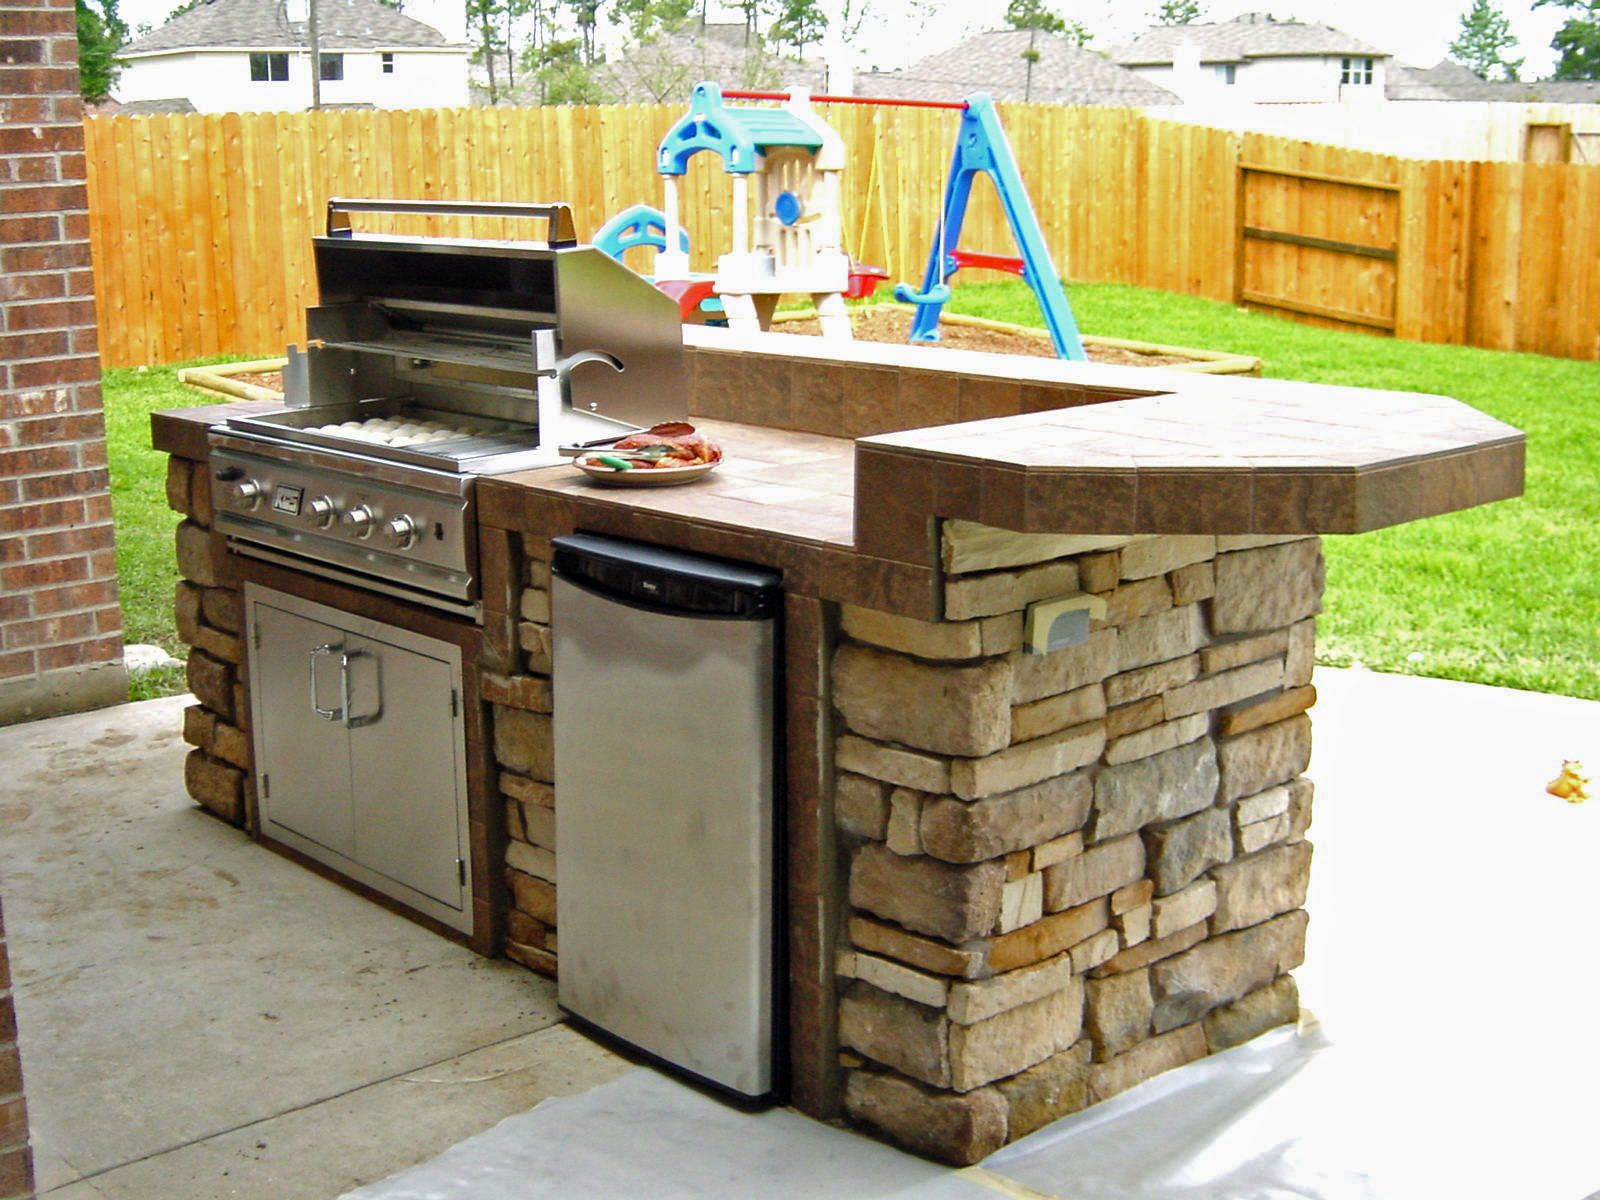 Uncategorized Designs For Outdoor Kitchens best 25 outdoor kitchens ideas on pinterest backyard kitchen bar and grill patio